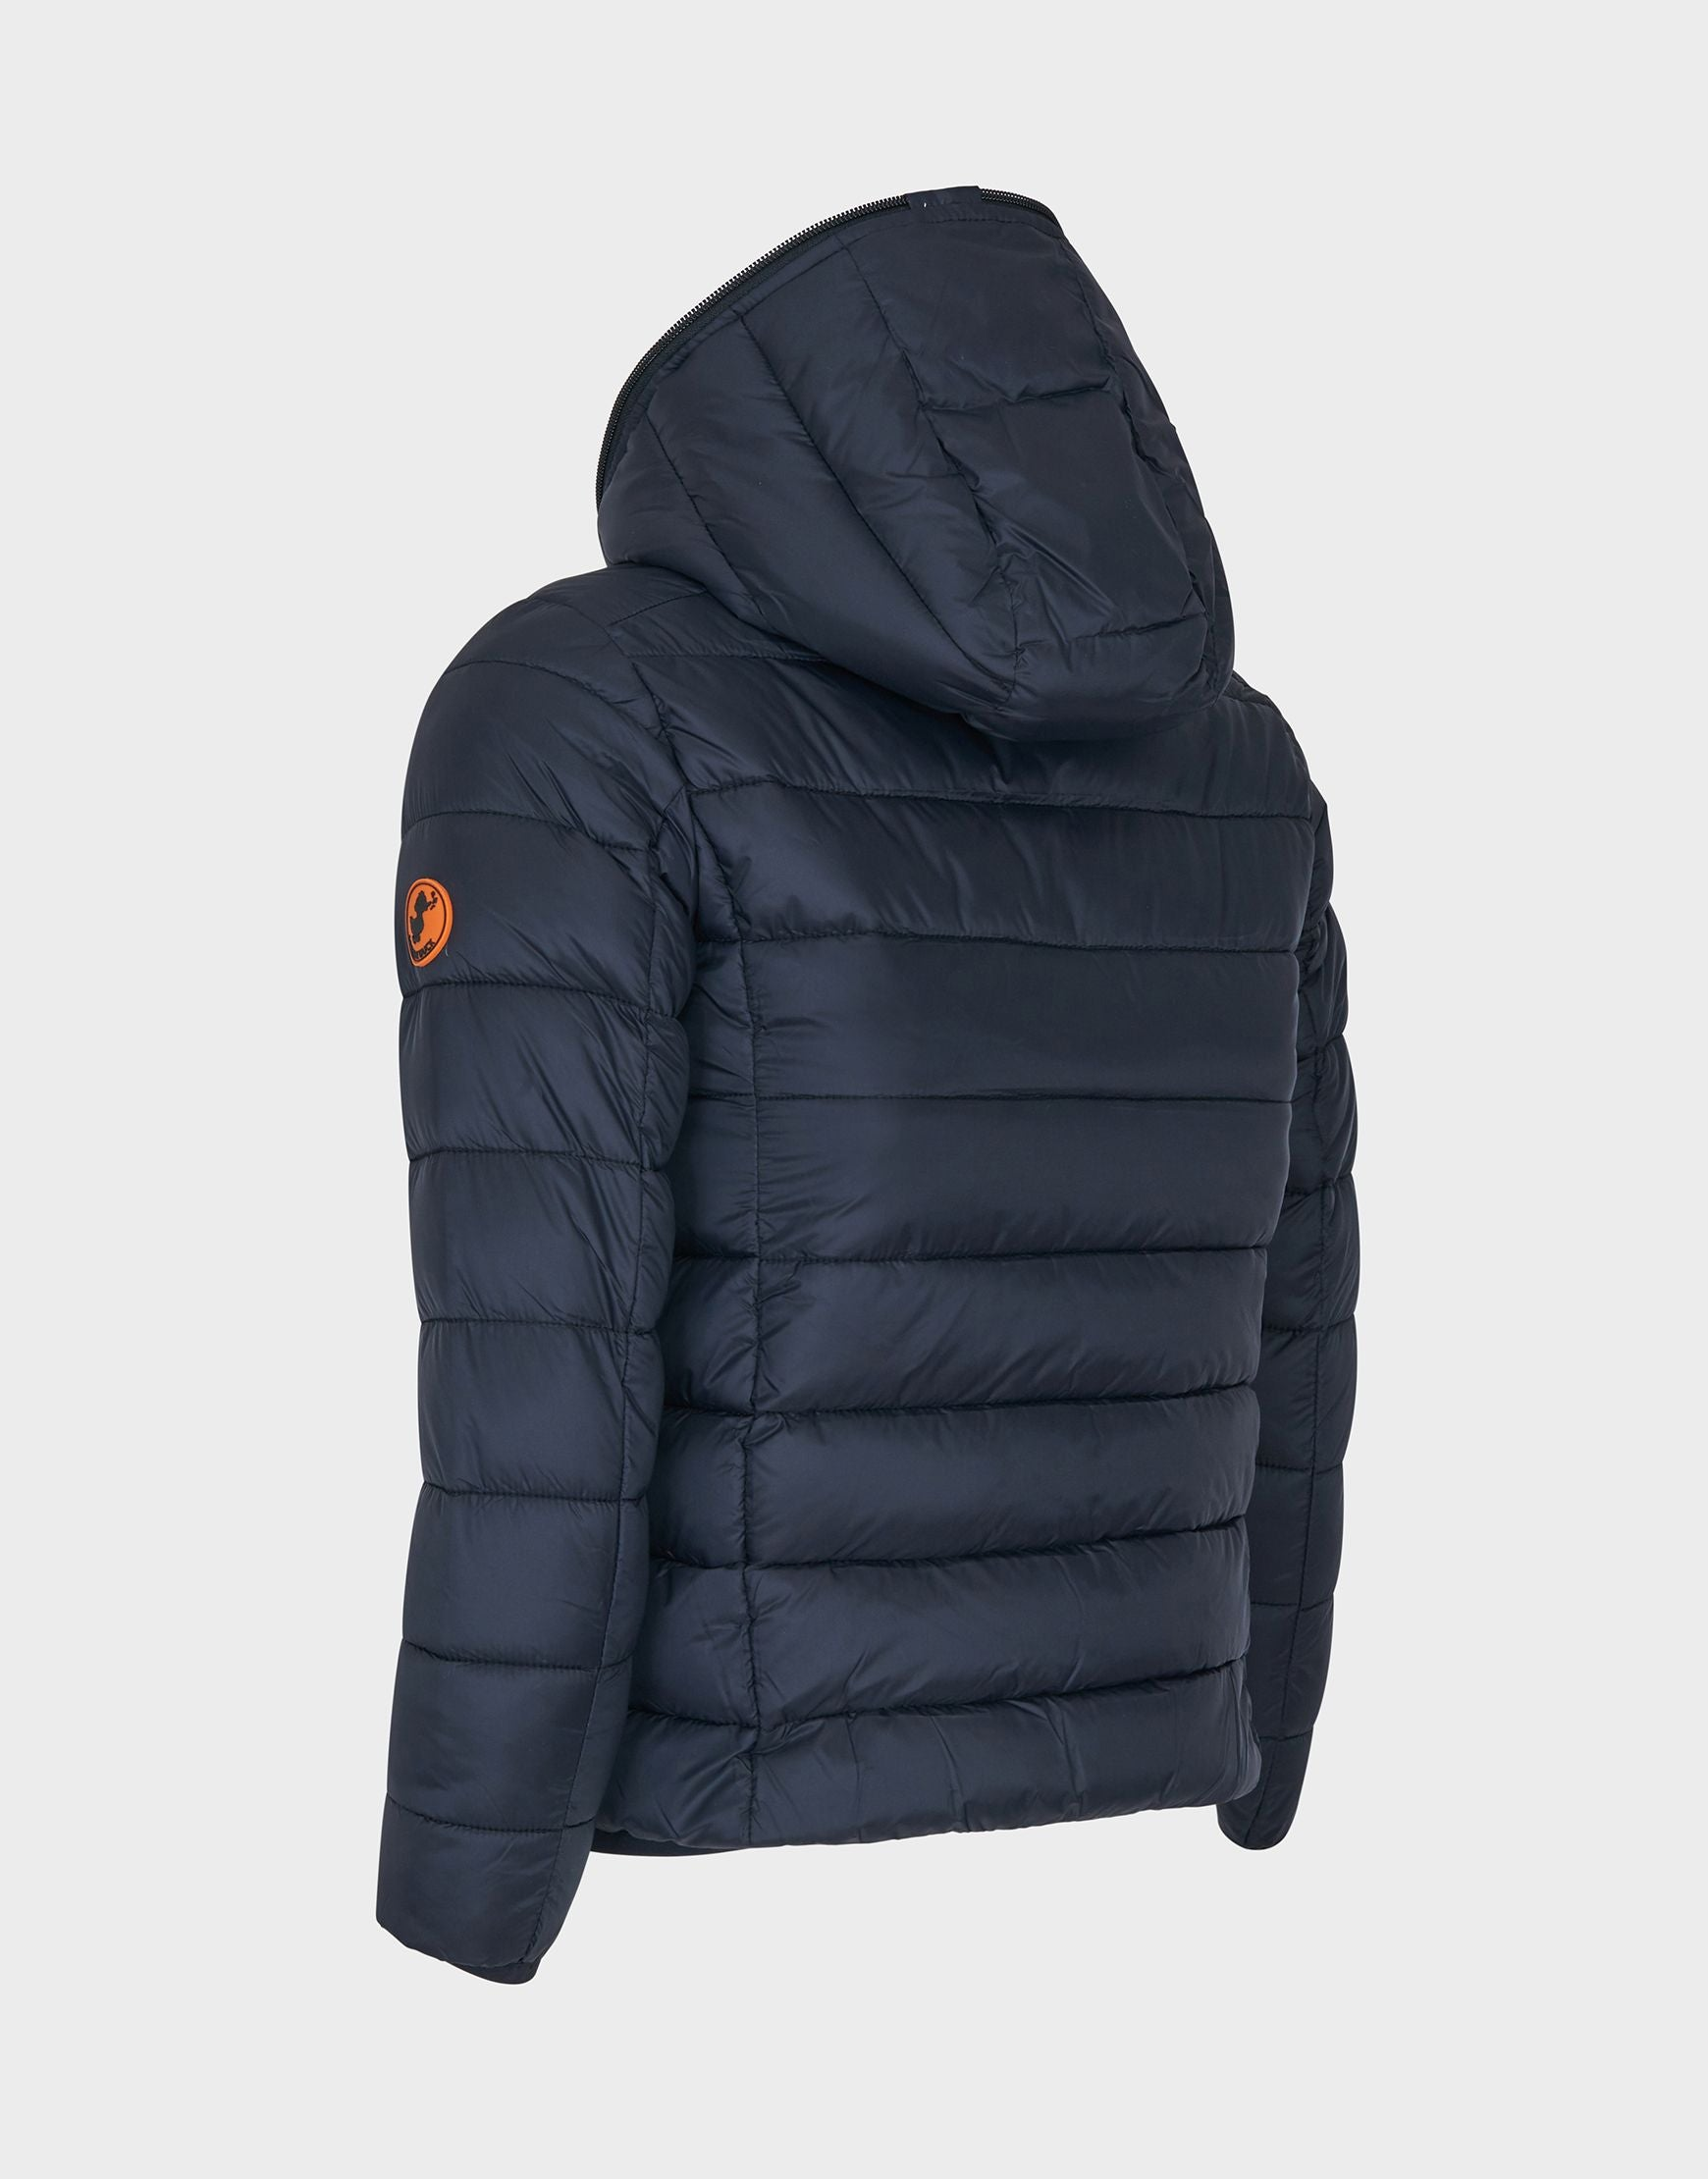 Boys GIGA Hooded Quilted Jacket in Black